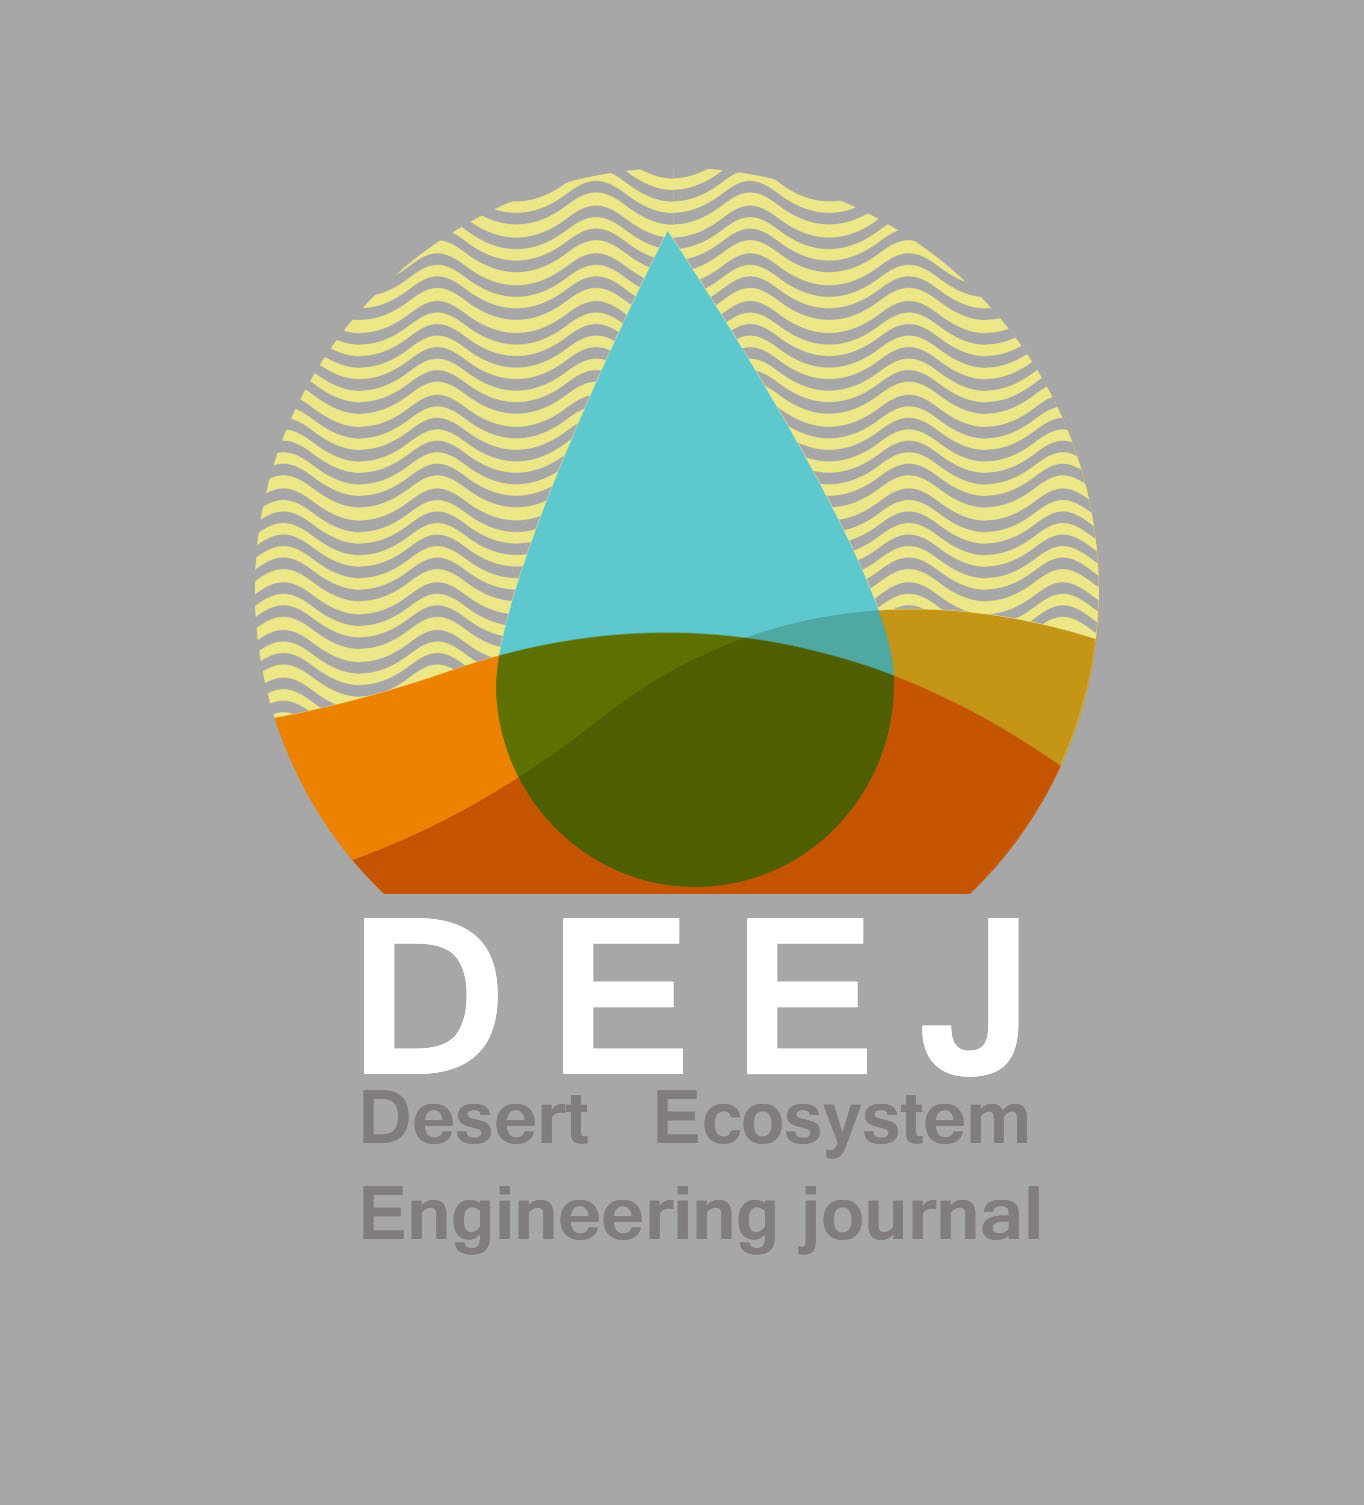 Desert Ecosystem Engineering Journal